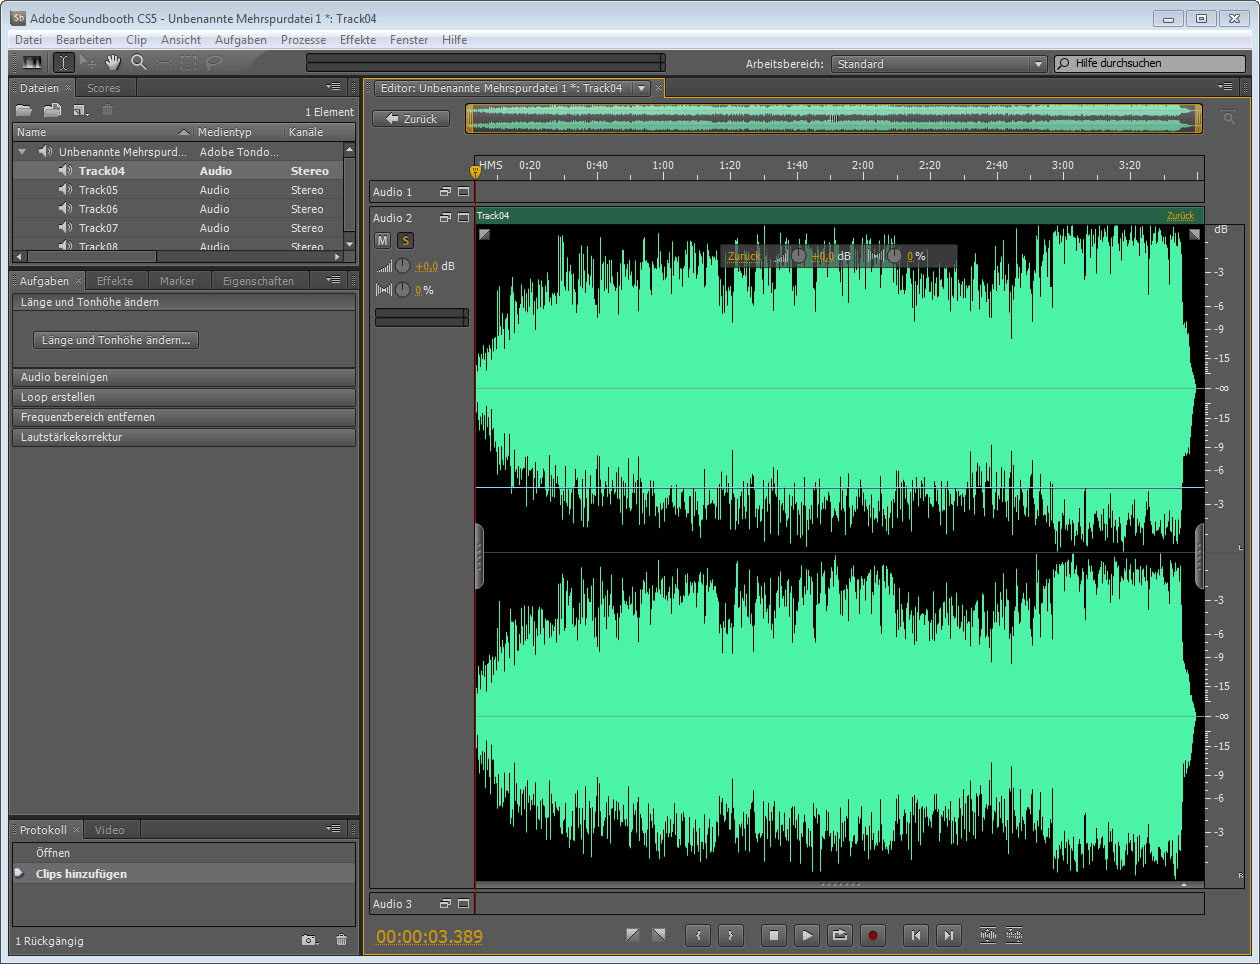 Adobe Soundbooth CS5